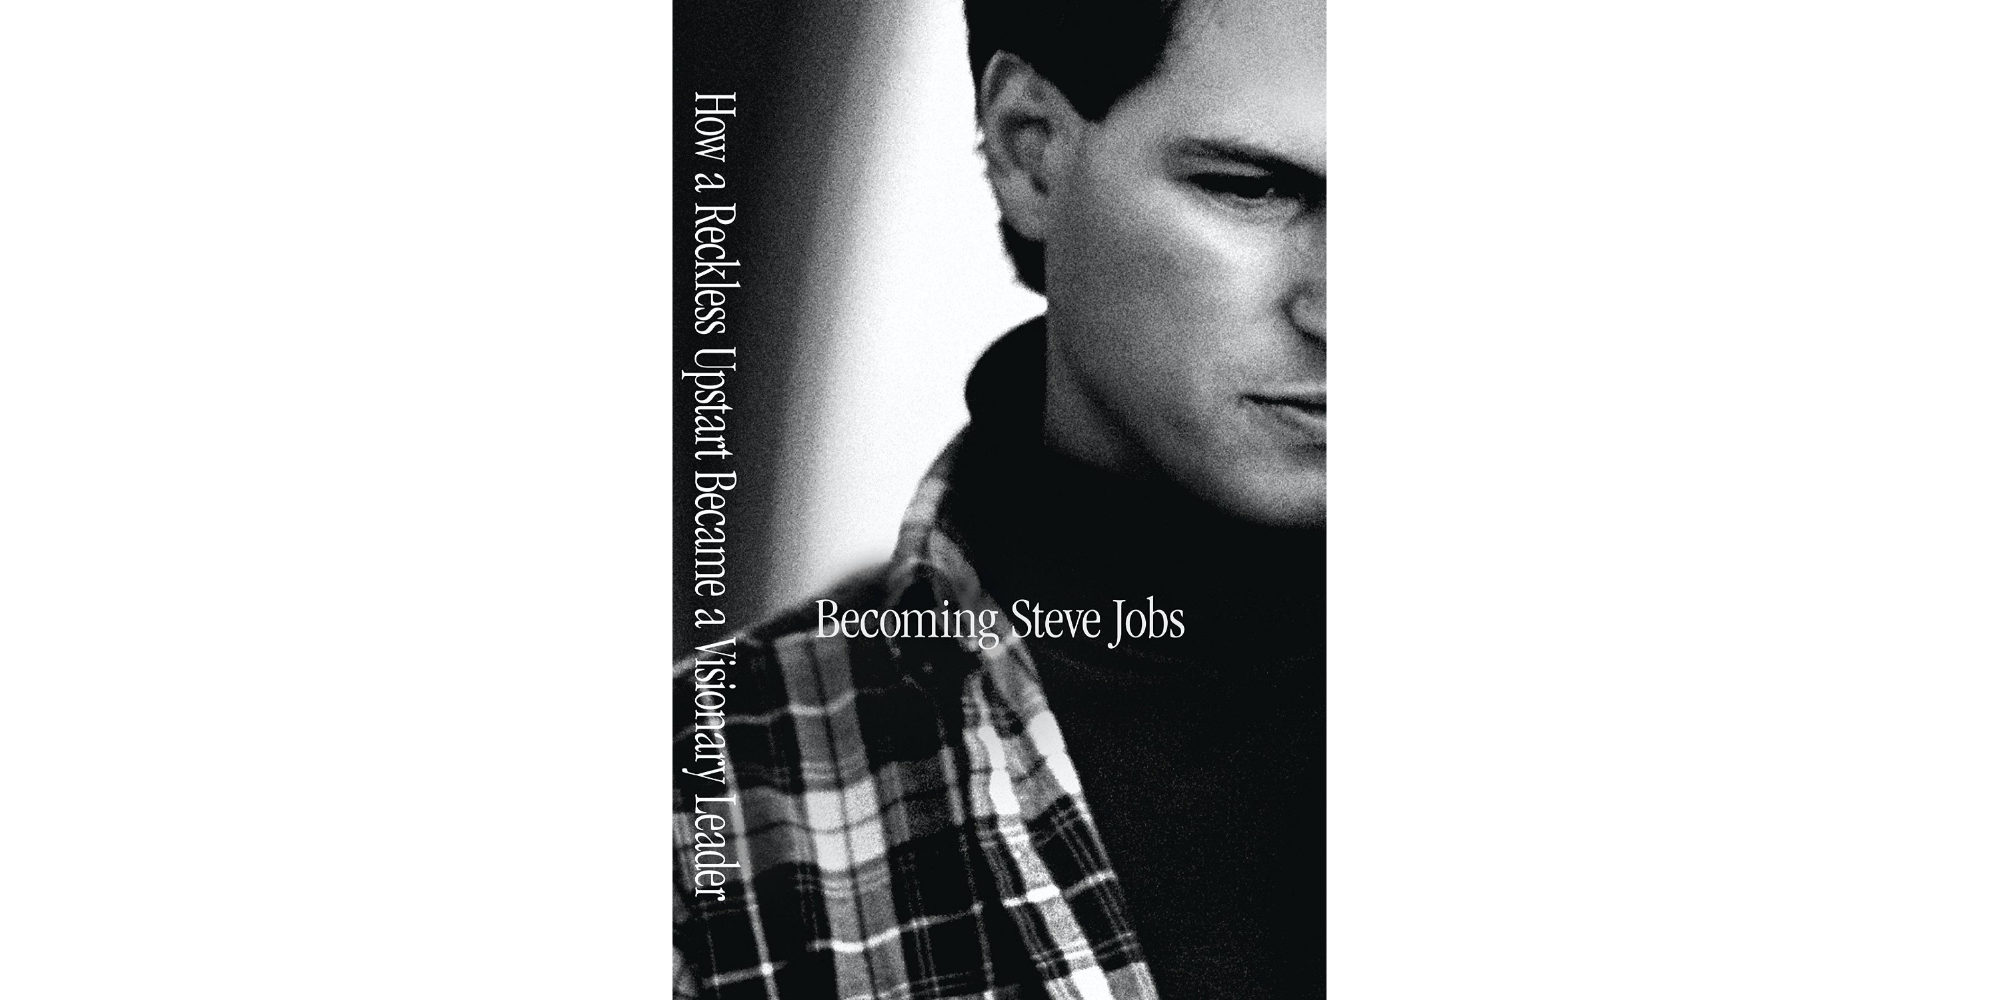 Becoming Steve Jobs- The Evolution of a Reckless Upstart into a Visionary Leader